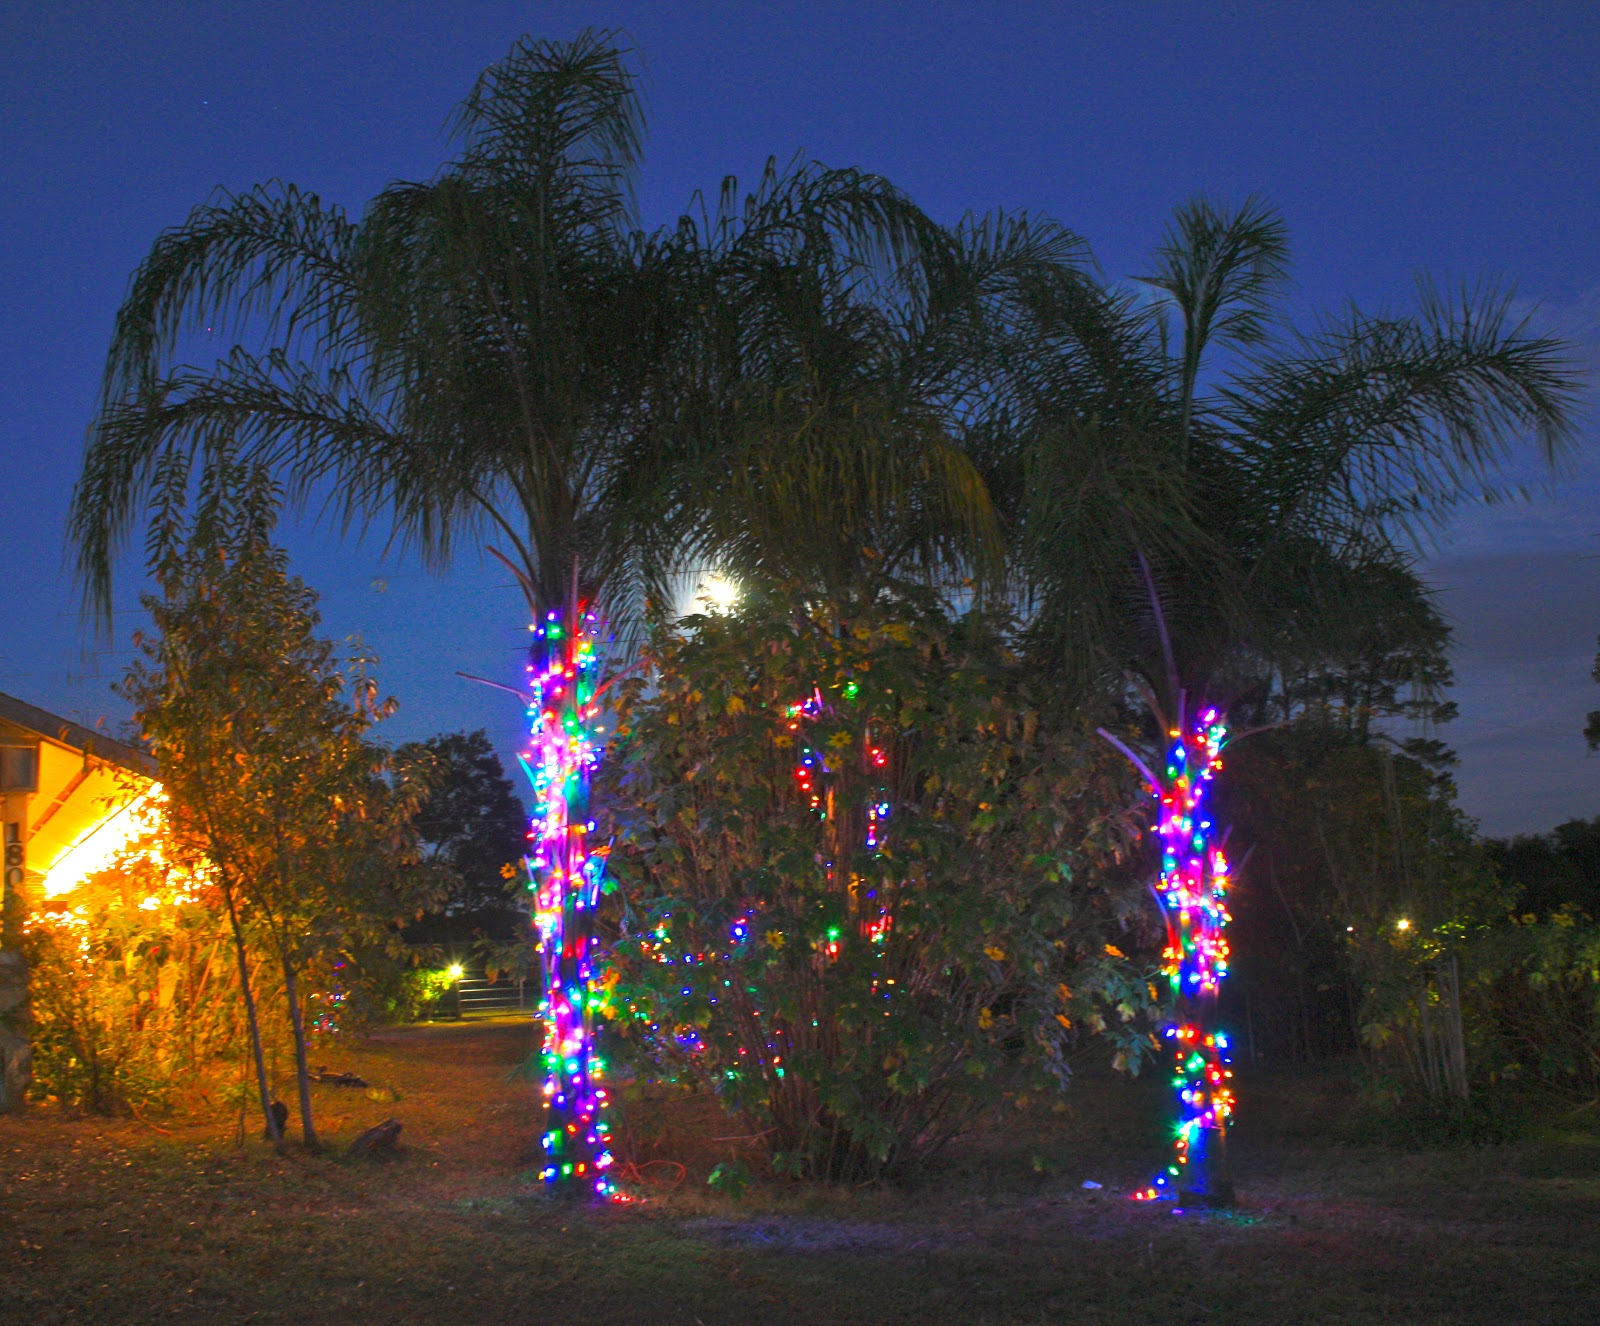 Christmas Palm Trees - Phillip's Natural World